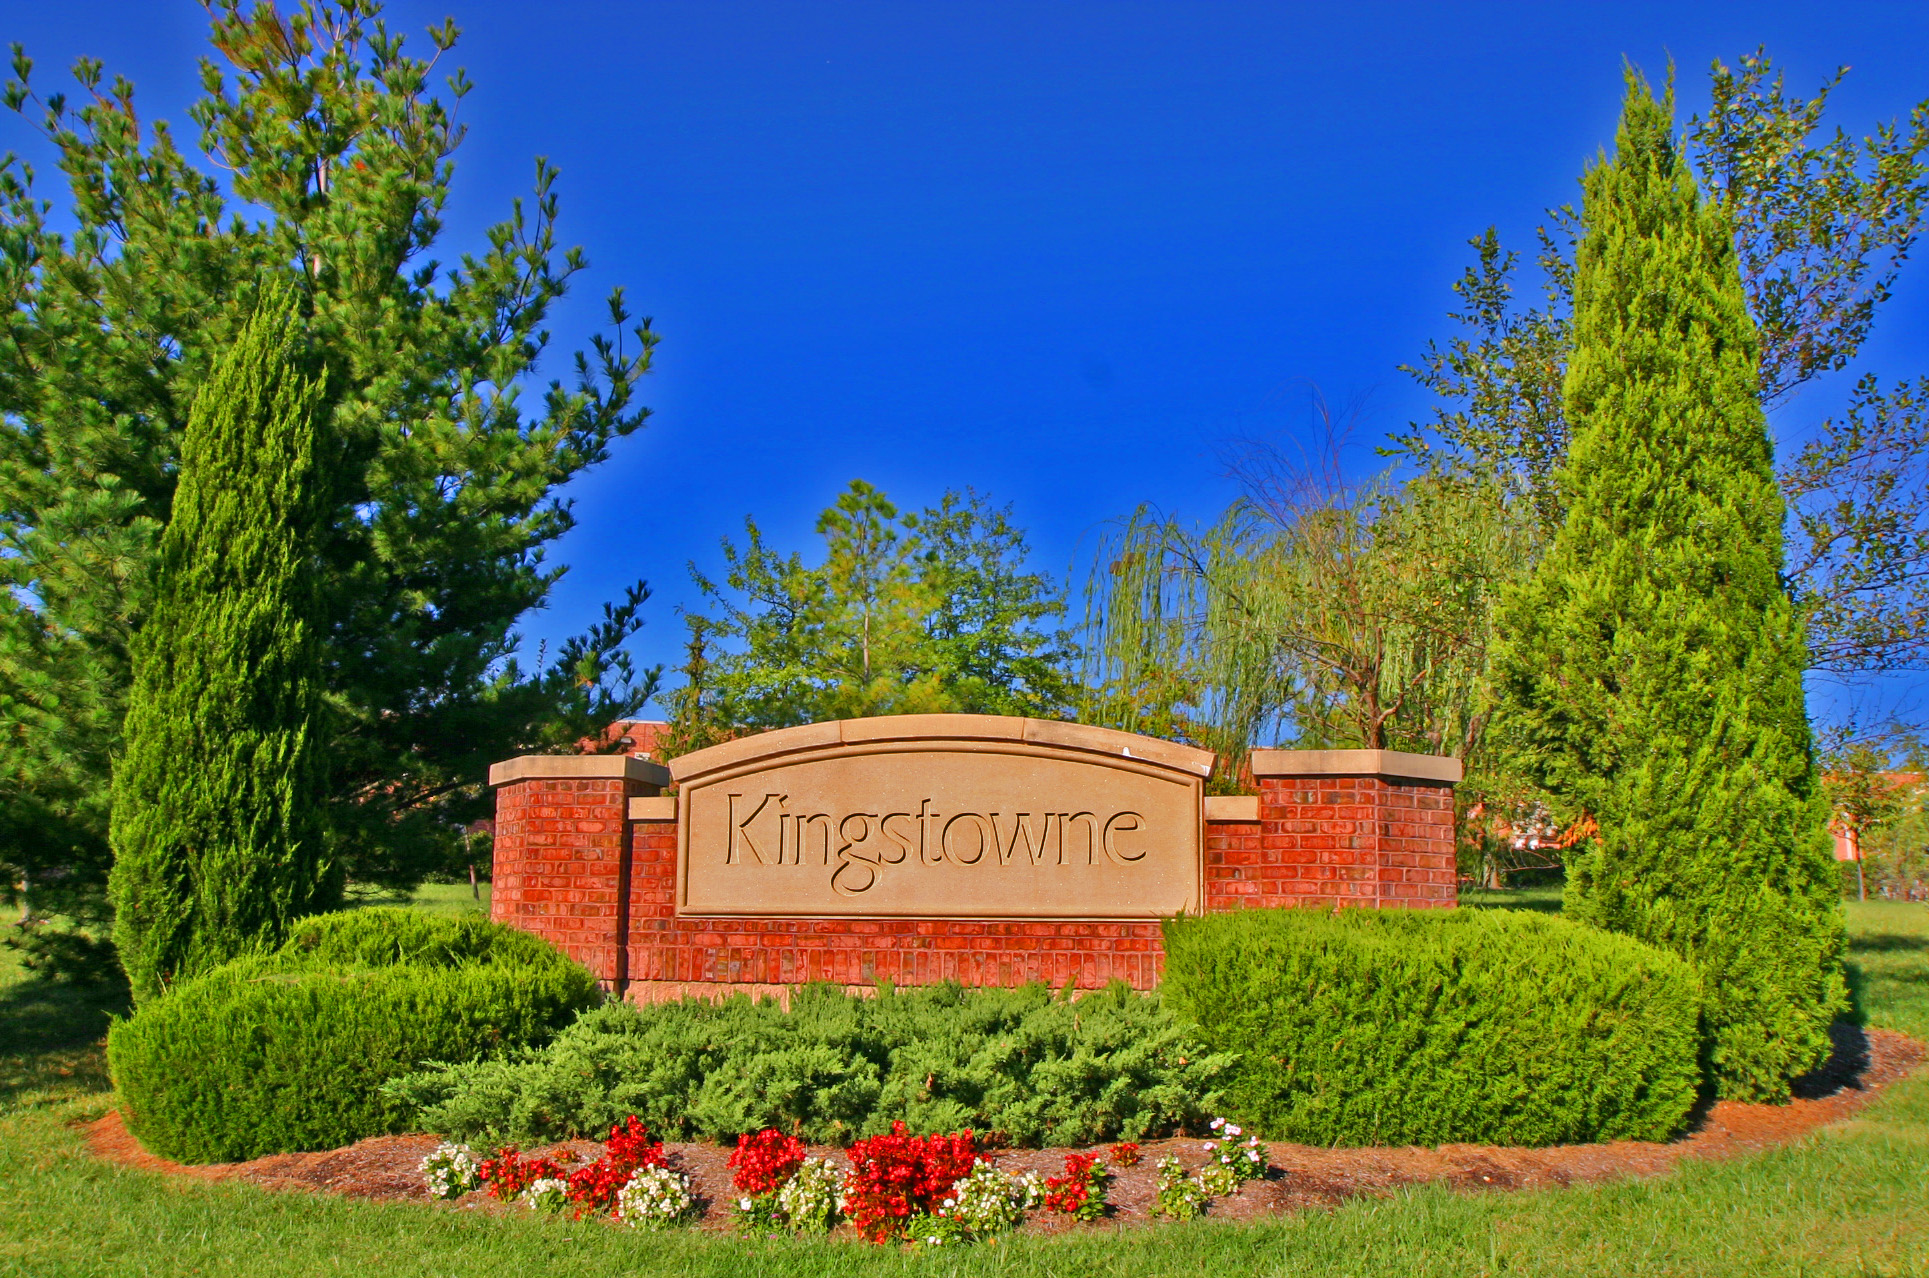 Kingstown Community Homes For Sale Alexandria Va 22315 22310 Buyer Agent Listing Specialist